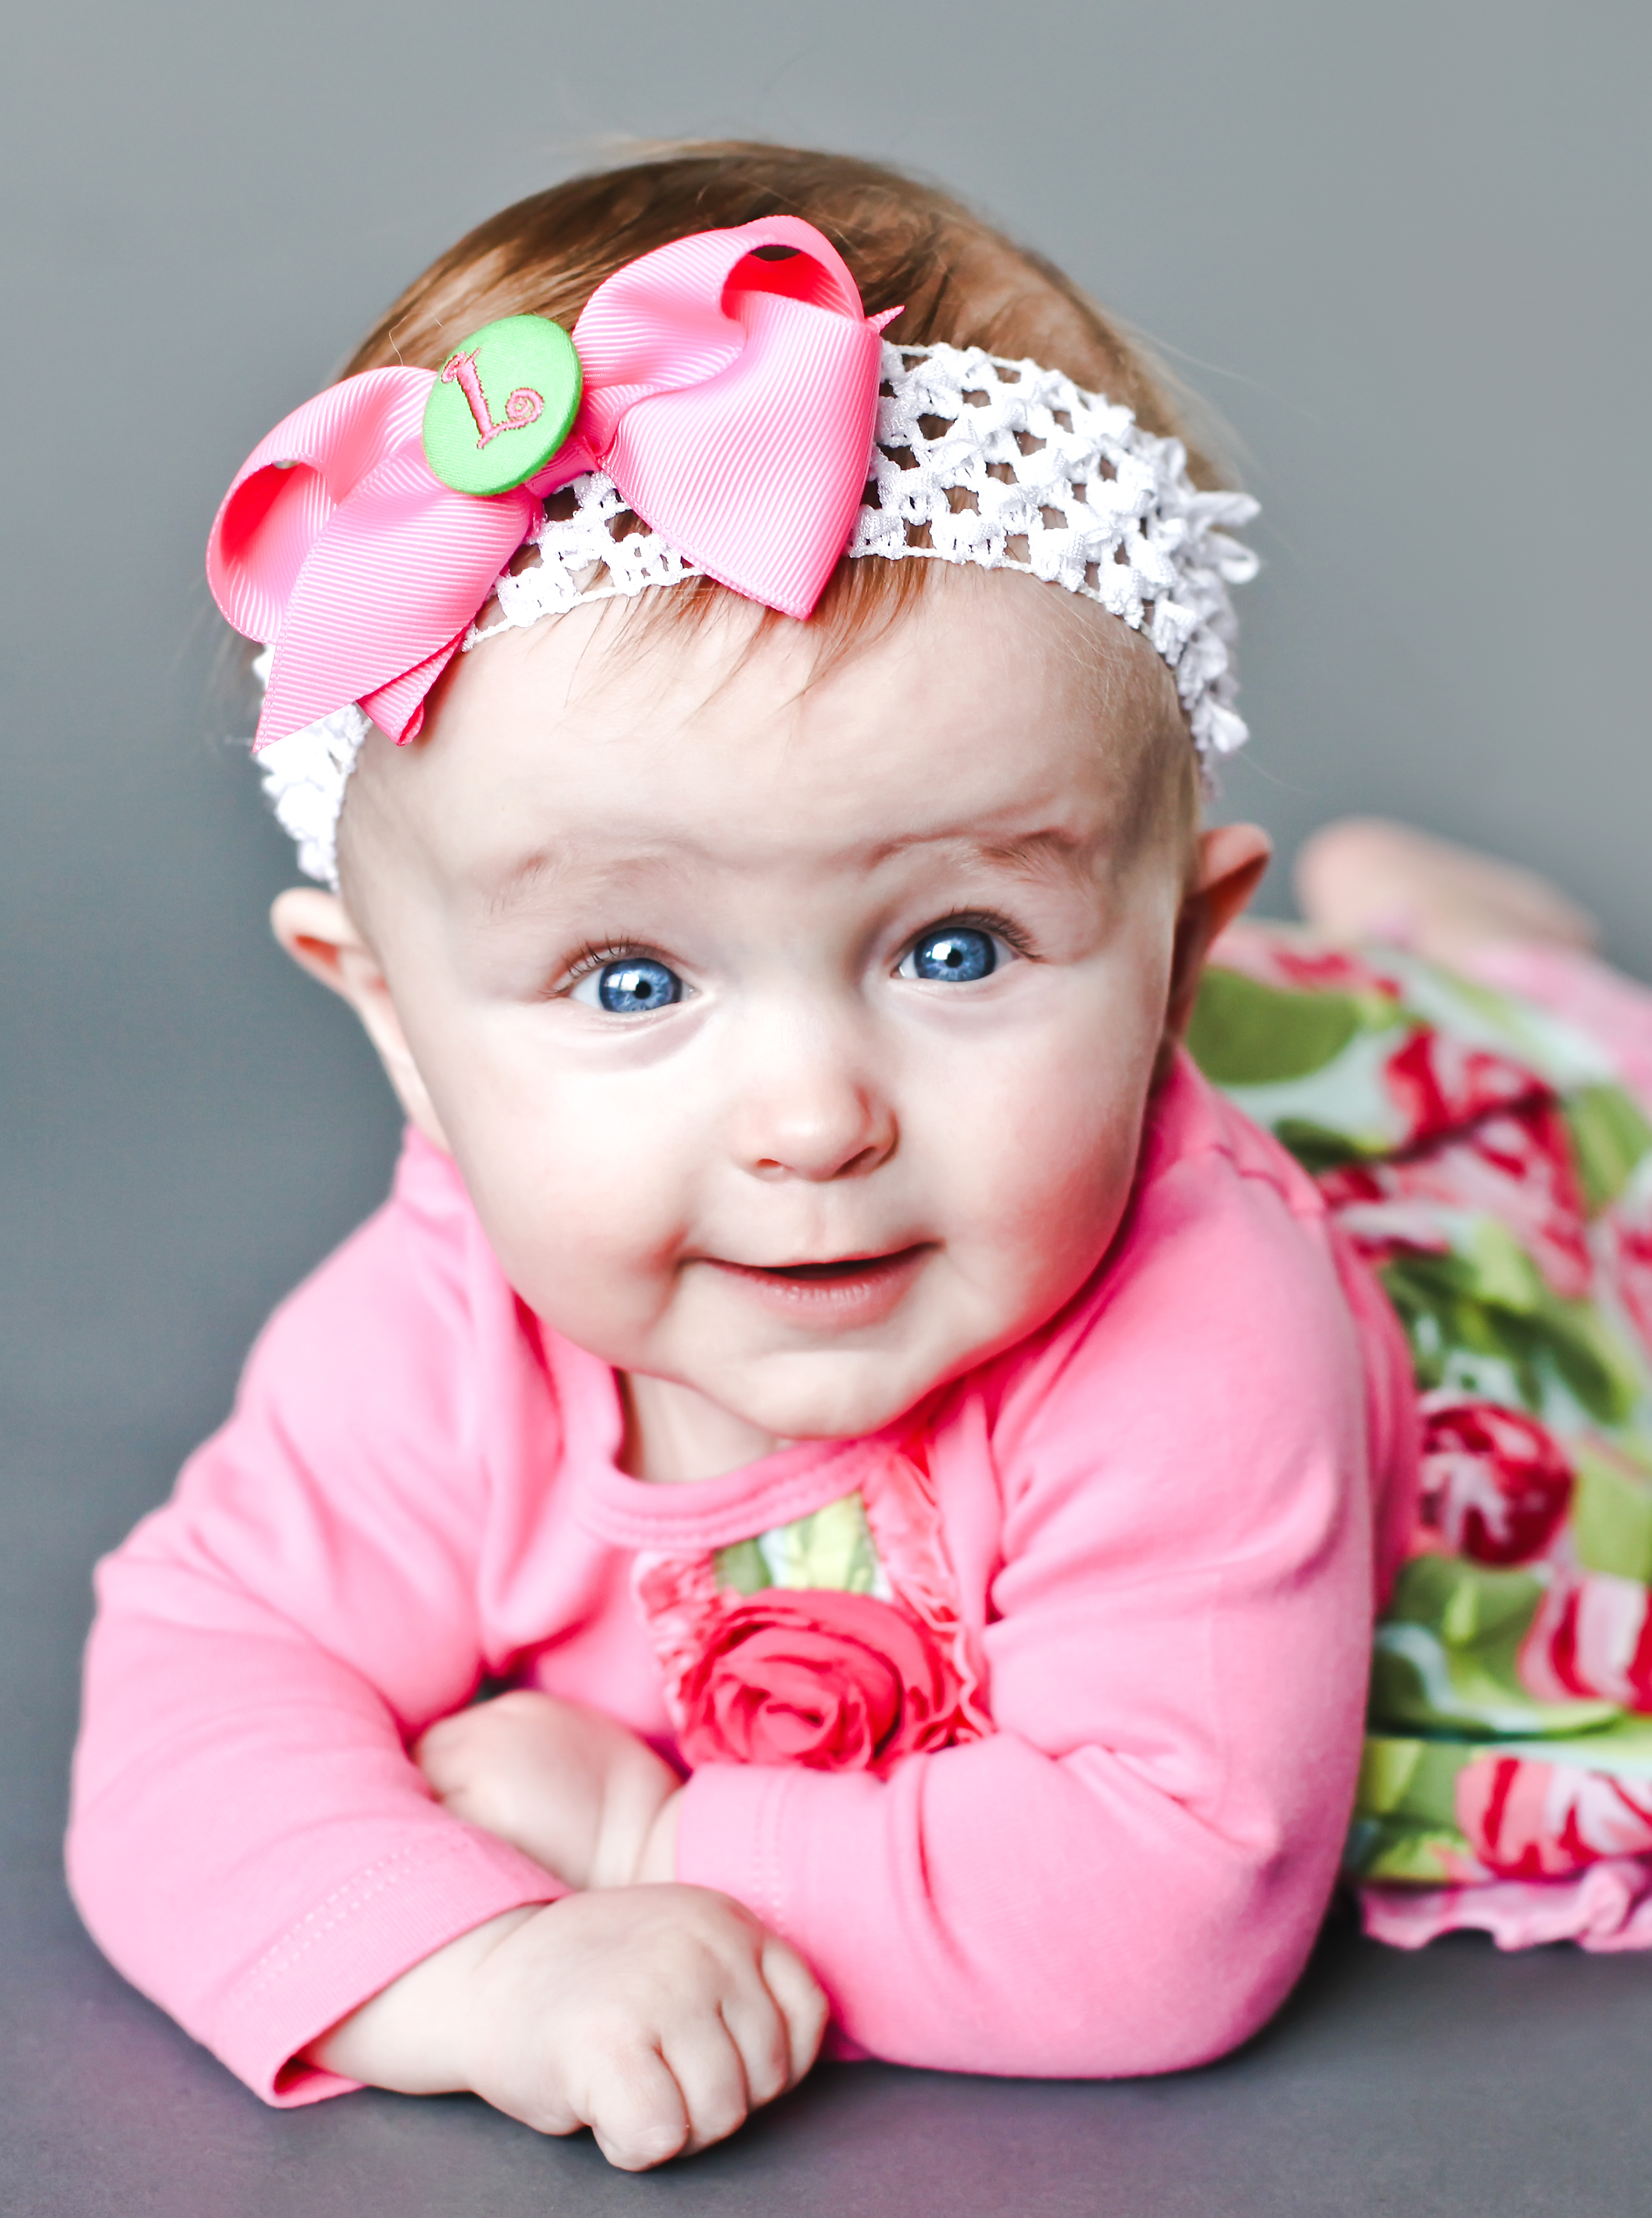 Group of sweet little baby 557 best cute babies images on pinterest children dresses and voltagebd Choice Image